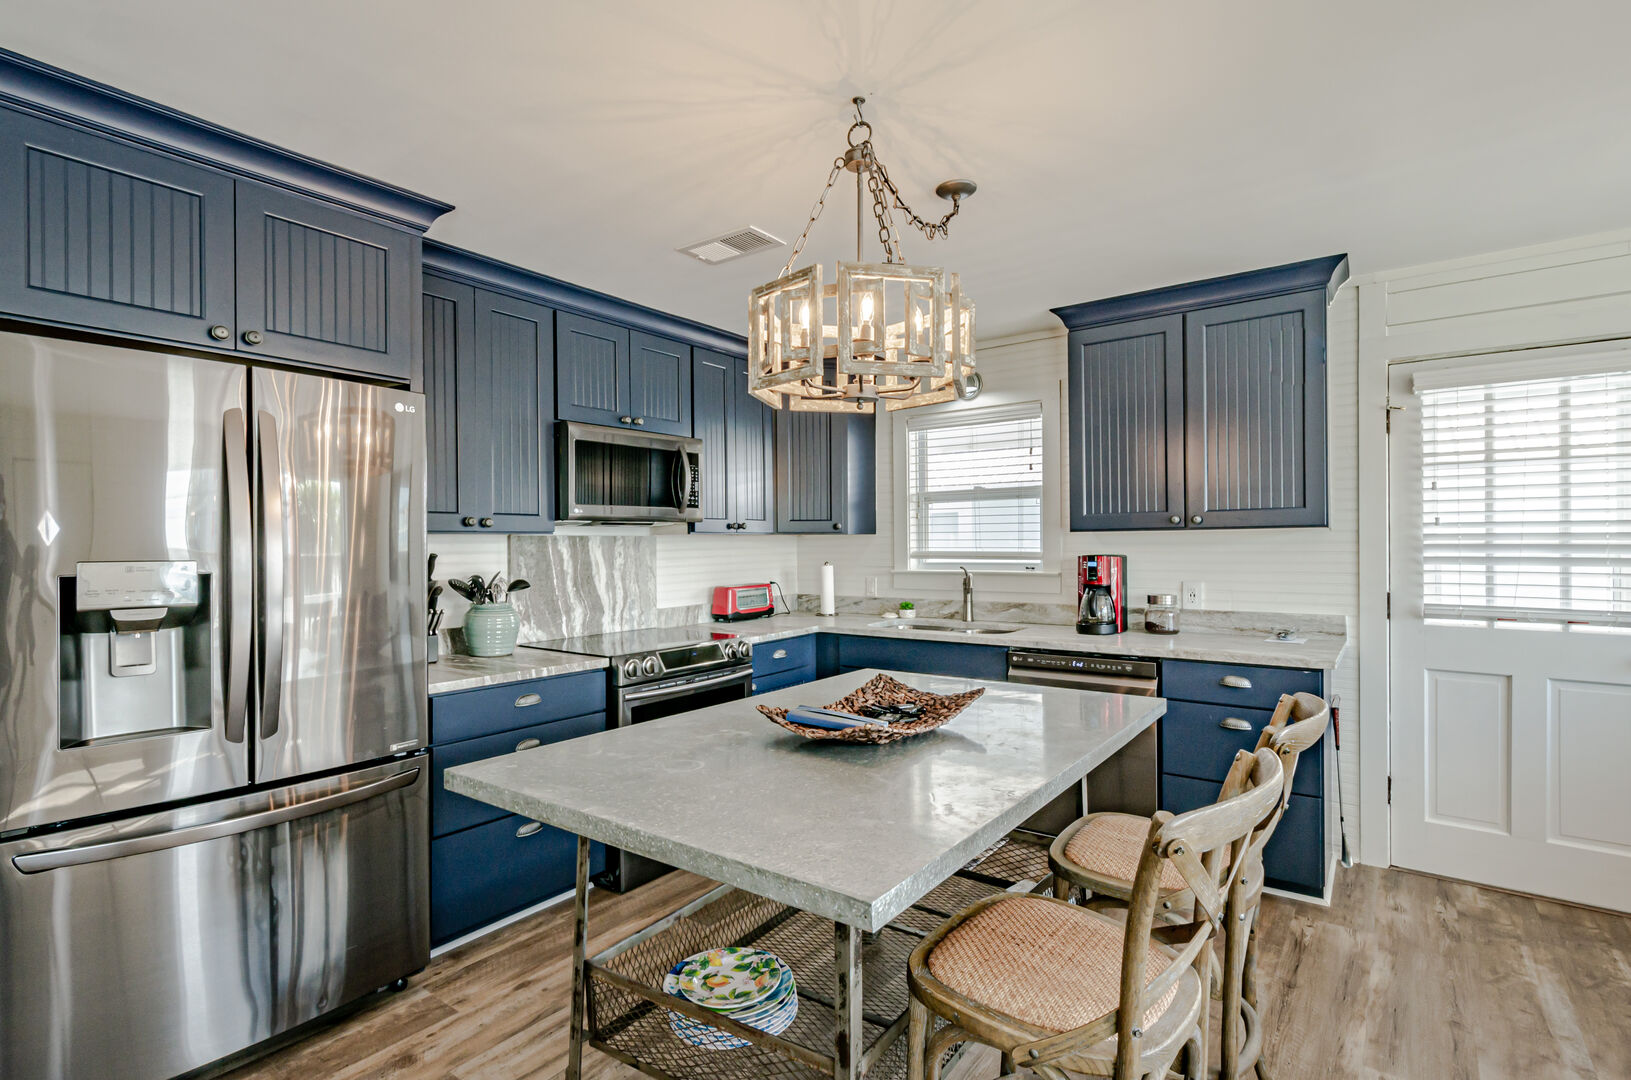 Gorgeous gourmet kitchen with modern appliances, blue cabinets, and center table island.